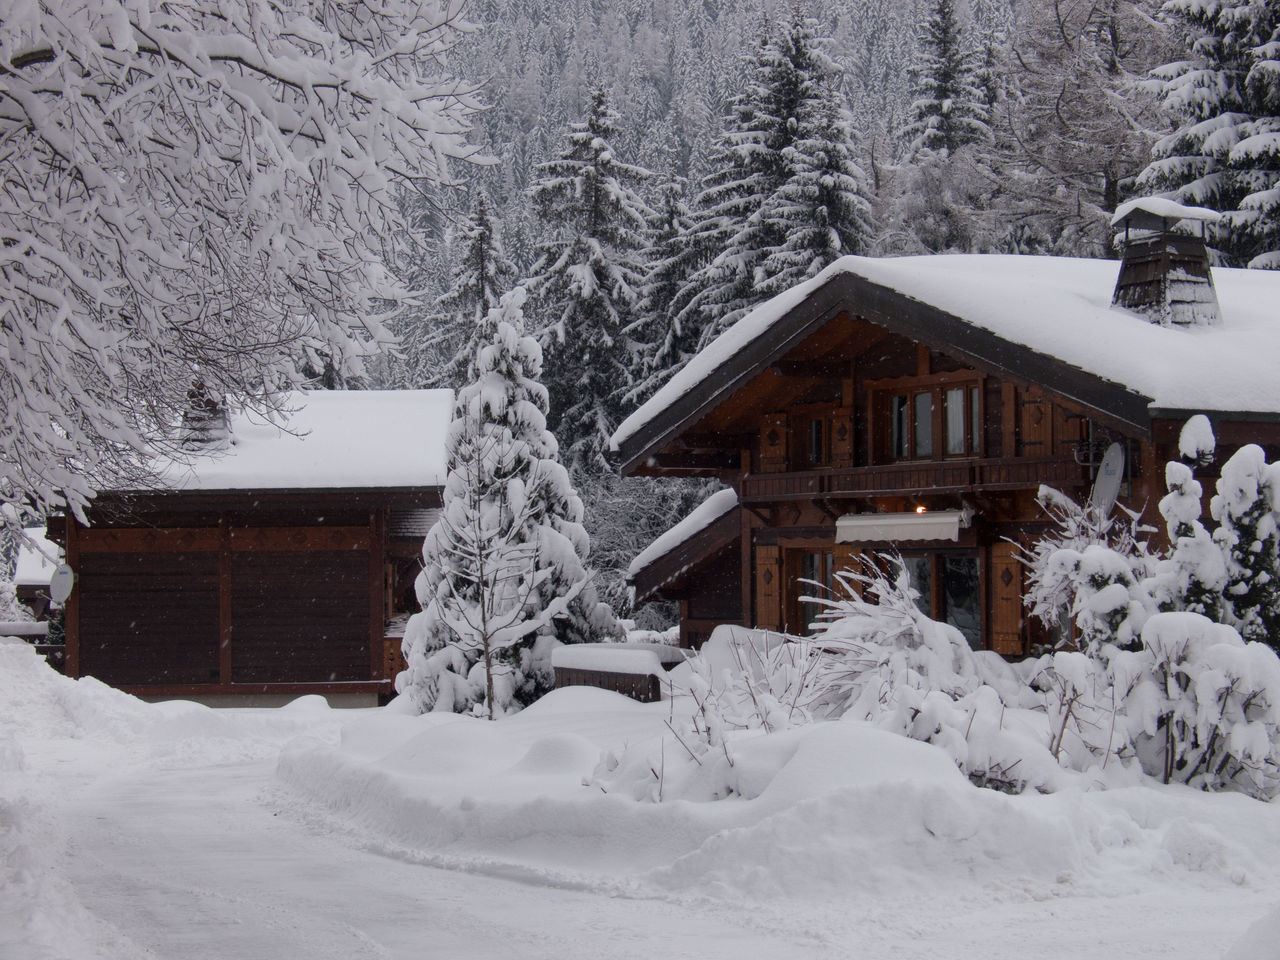 argentiere,chamonix,haute savoie,france Agricultural Building Architecture Beauty In Nature Building Exterior Built Structure Chalet Cold Temperature Cottage Eaves Forest Frozen House Nature No People Outdoors Roof Scenics Silence Snow Snowing Tranquil Scene Tree White Color Winter Wood - Material